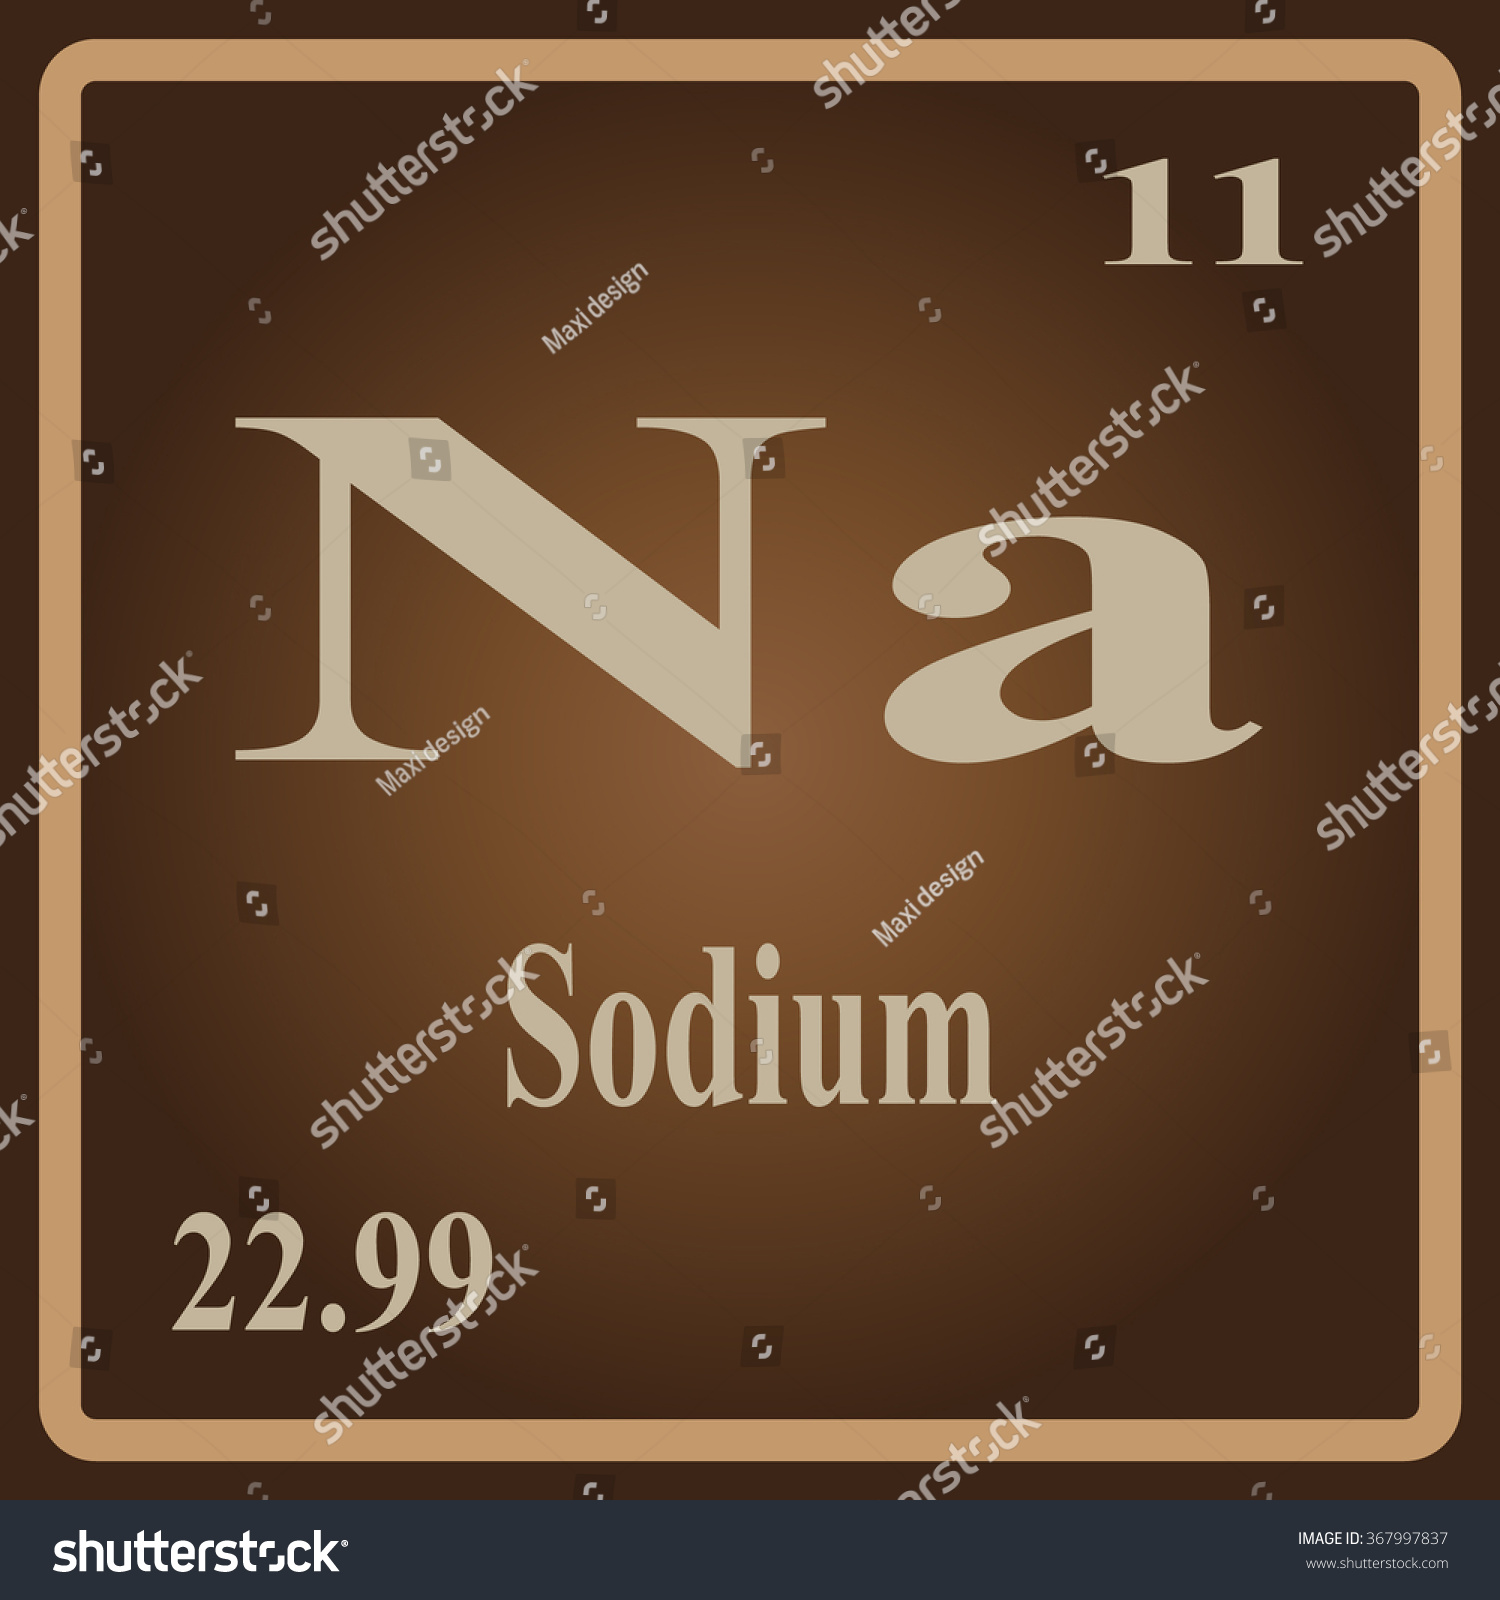 Periodic table of elements sodium images periodic table images the periodic table sodium gallery periodic table images periodic table elements sodium stock vector 367997837 shutterstock gamestrikefo Images